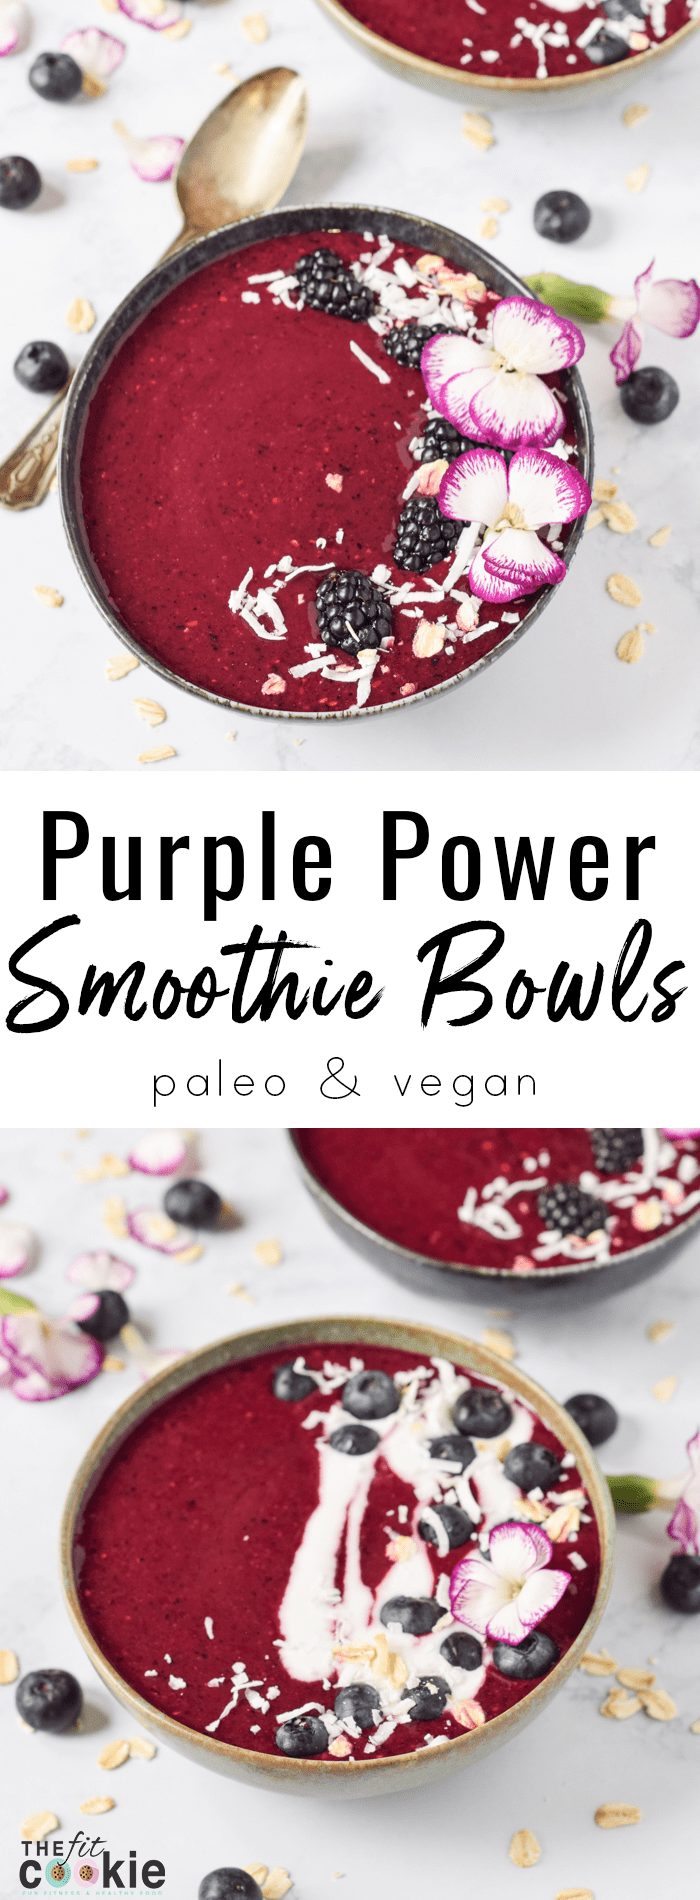 If you're excited about smoothies, this recipe is for you: I made the Purple Power Smoothie Bowls from Lindsay Cotter's new book Nourishing Superfood Bowls and I'm sharing the recipe with you! They are vegan, paleo, allergy friendly, and beautiful - @TheFitCookie #ad #smoothie #vegan #paleo #nourishingbowls